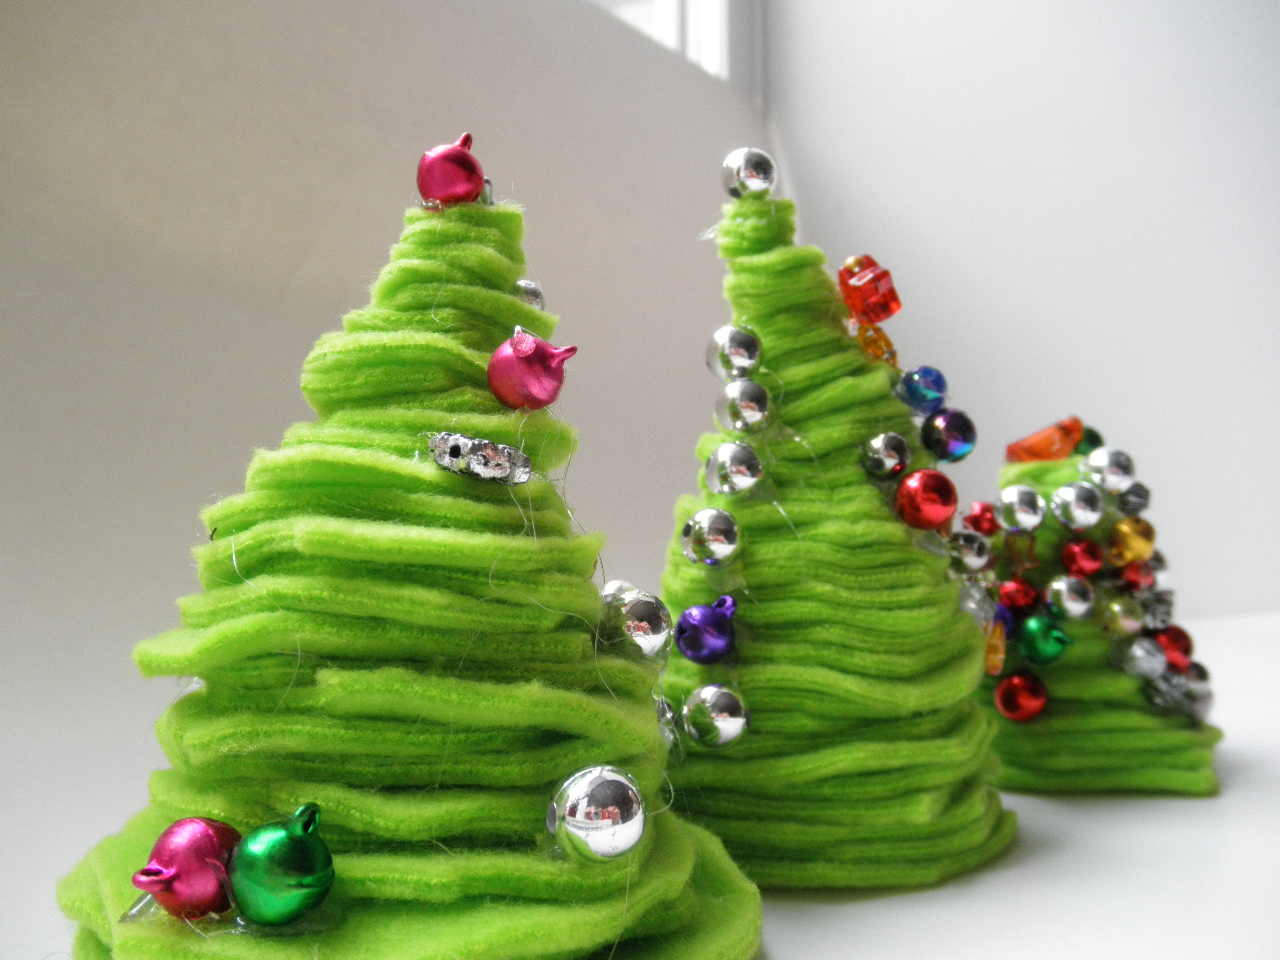 Dr. Seuss Christmas Trees = Awesome Kids Craft | A Vision to ...